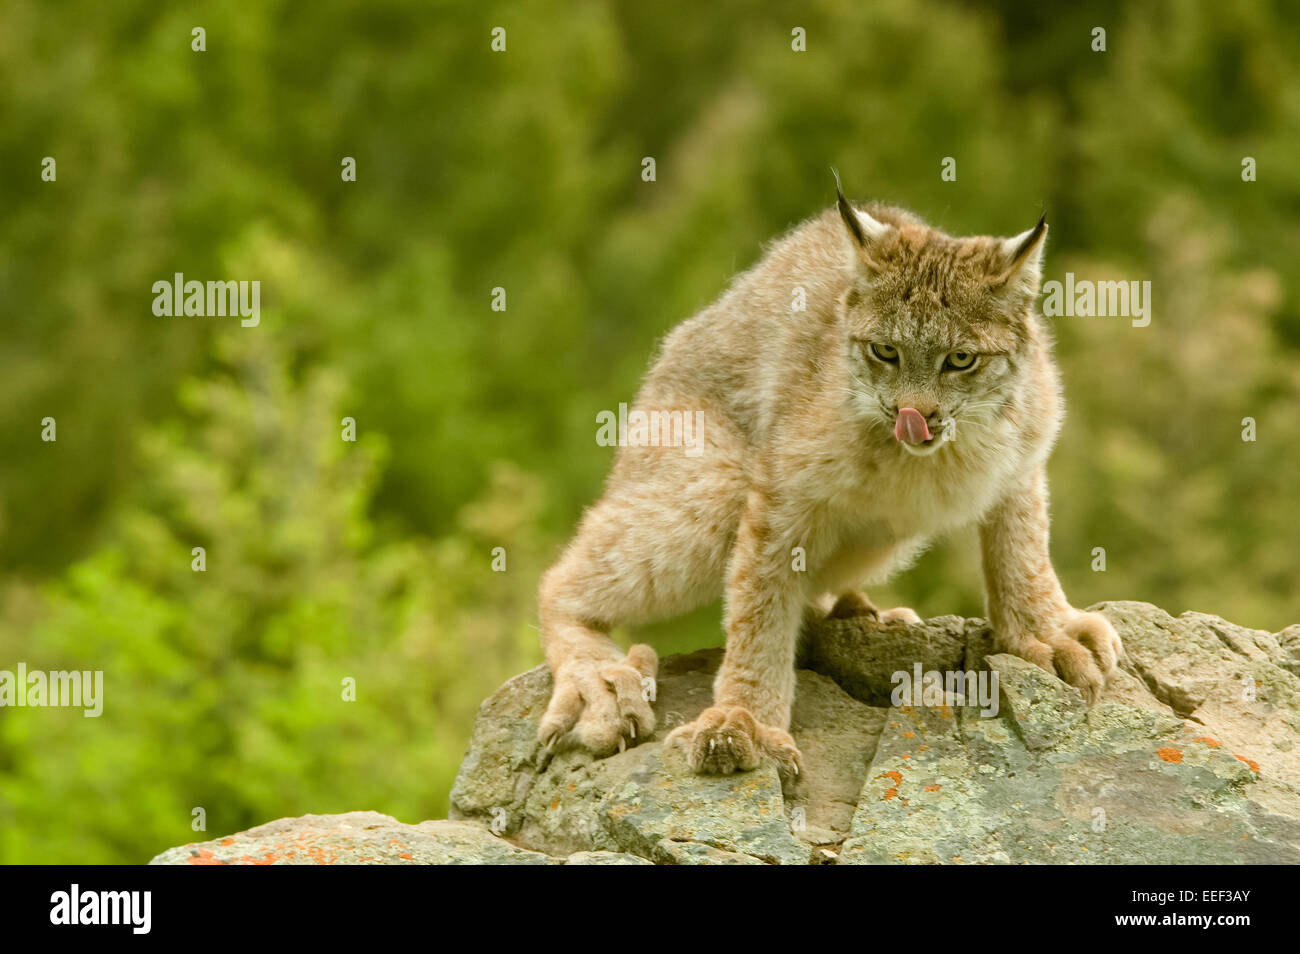 Sub-adult Canada Lynx with tongue out, on rocks in Bozeman, Montana, USA Stock Photo